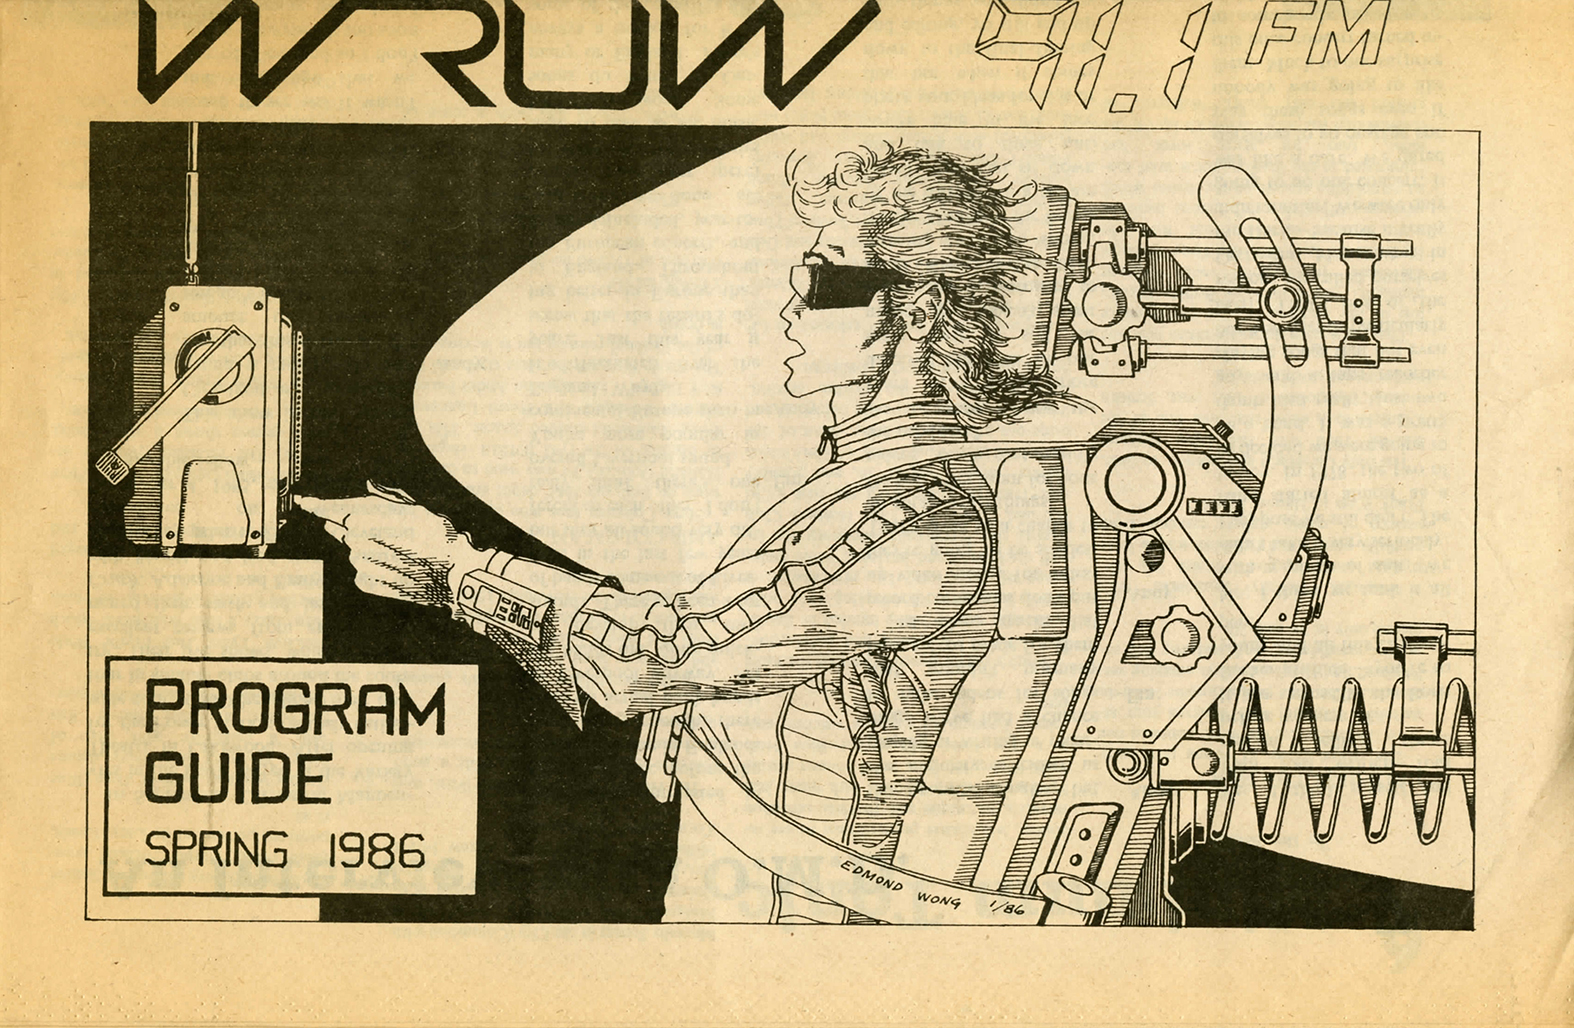 A newsprint cover of WRUW programming guide depicting a cartton illustration of and man sitting with a radio from 1986.n from 1987.